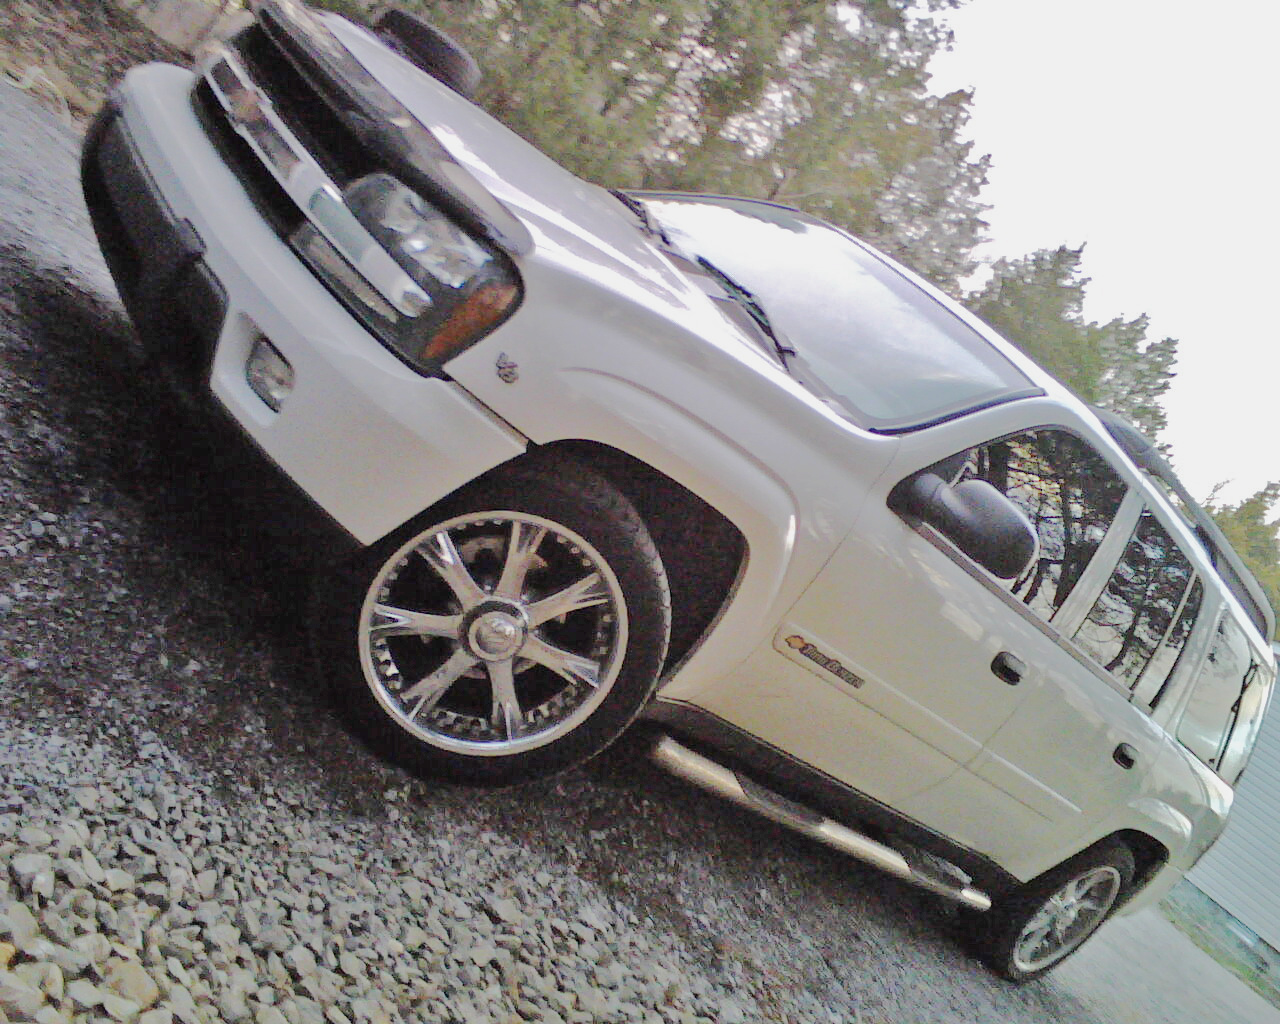 trailblazer 2004 engine